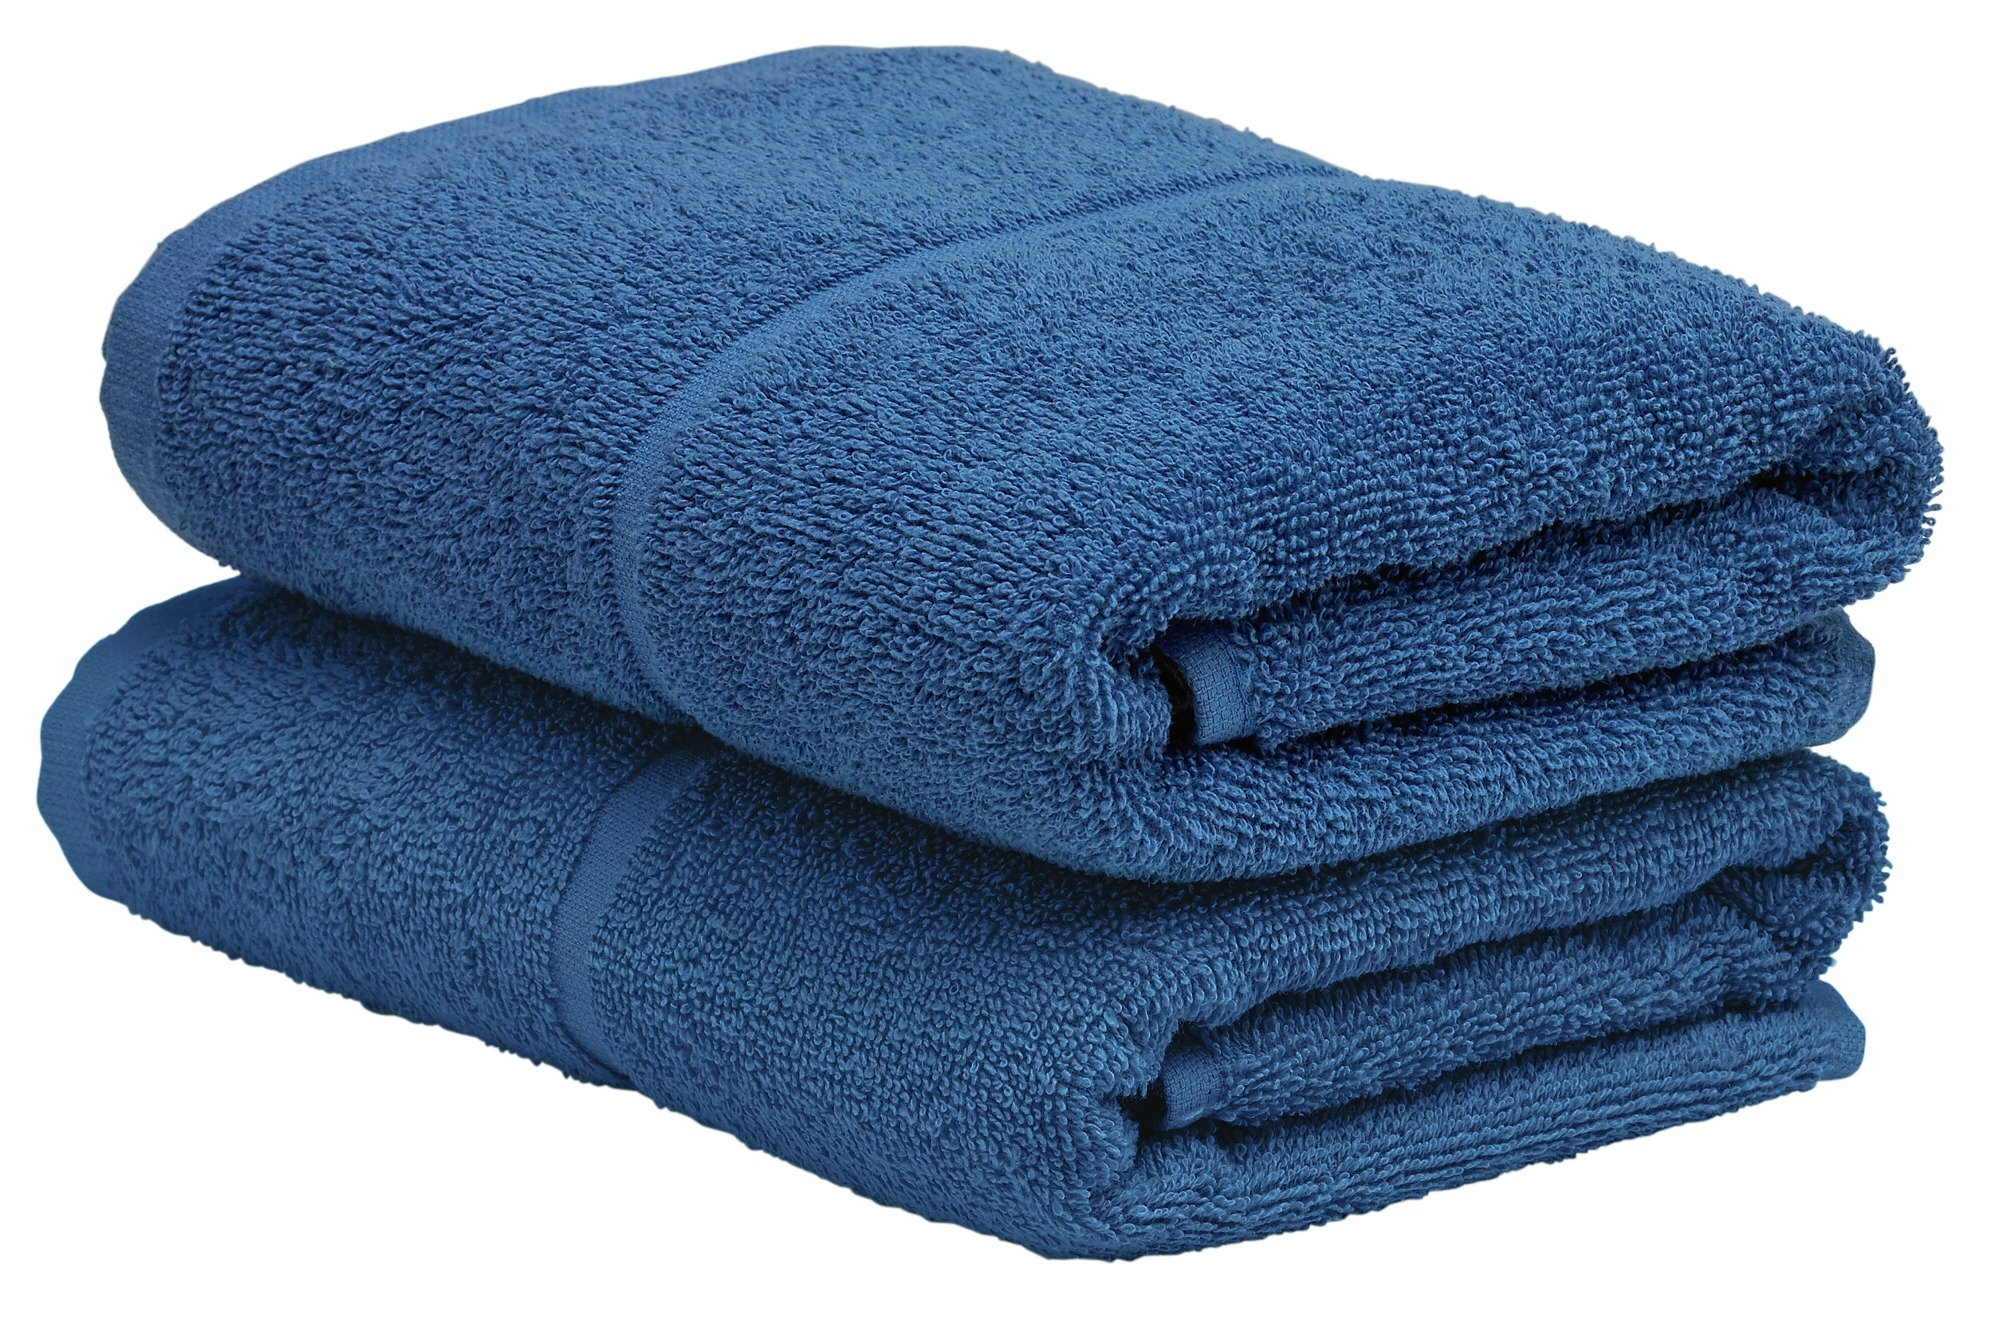 Argos Home Pair of Hand Towels - Ink Blue